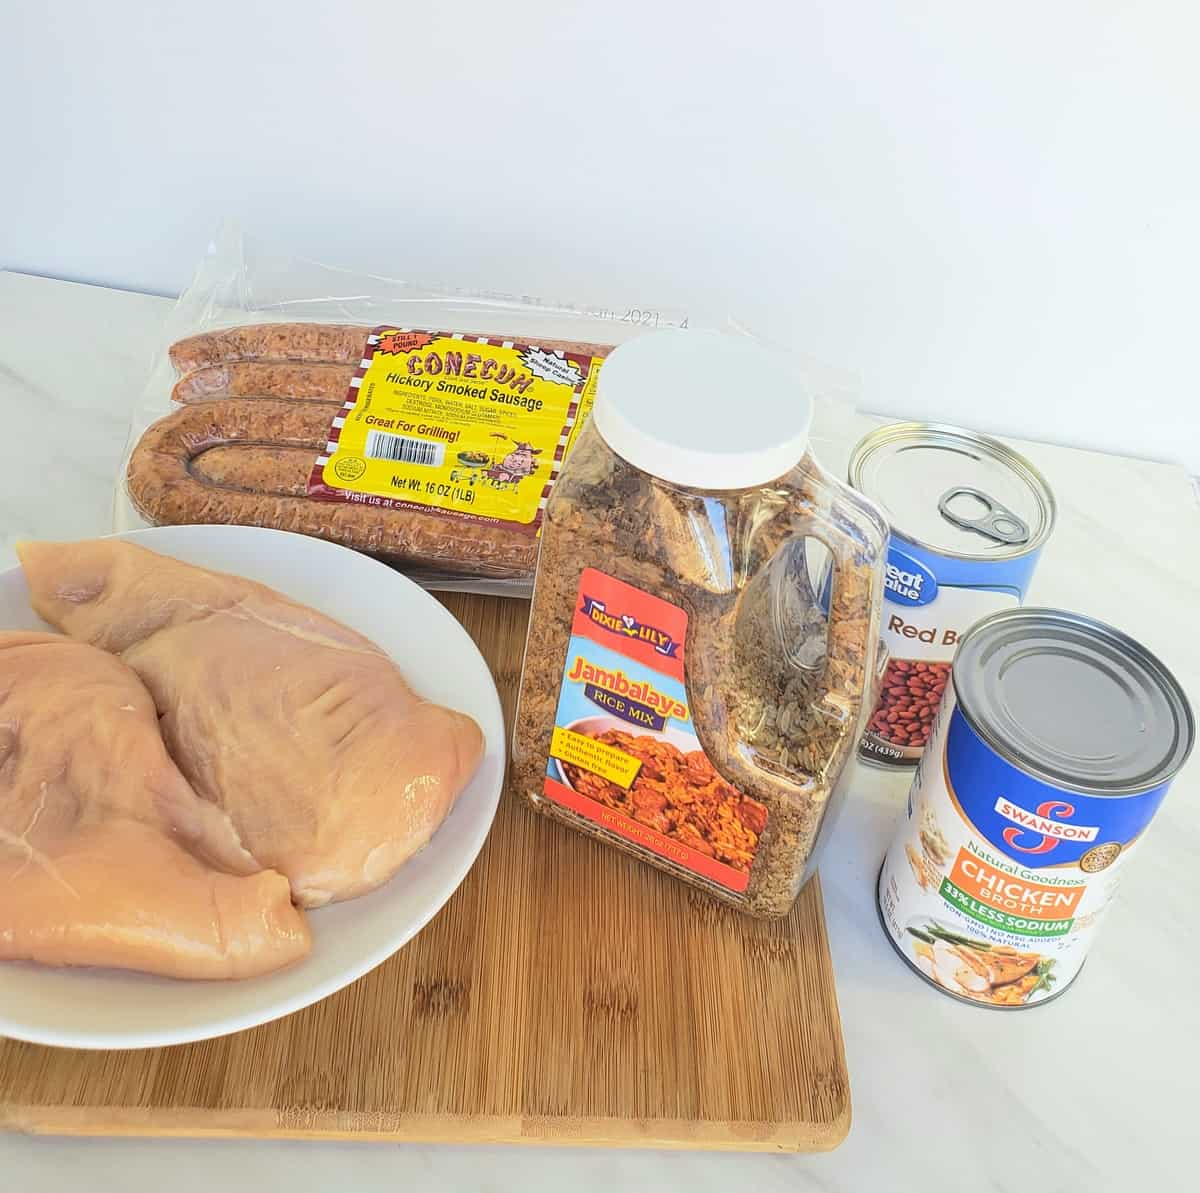 Ingredients: chicken breasts in a bowl, Dixie Lily jambalaya mix, smoked sausage, can of chicken broth, can of red beans